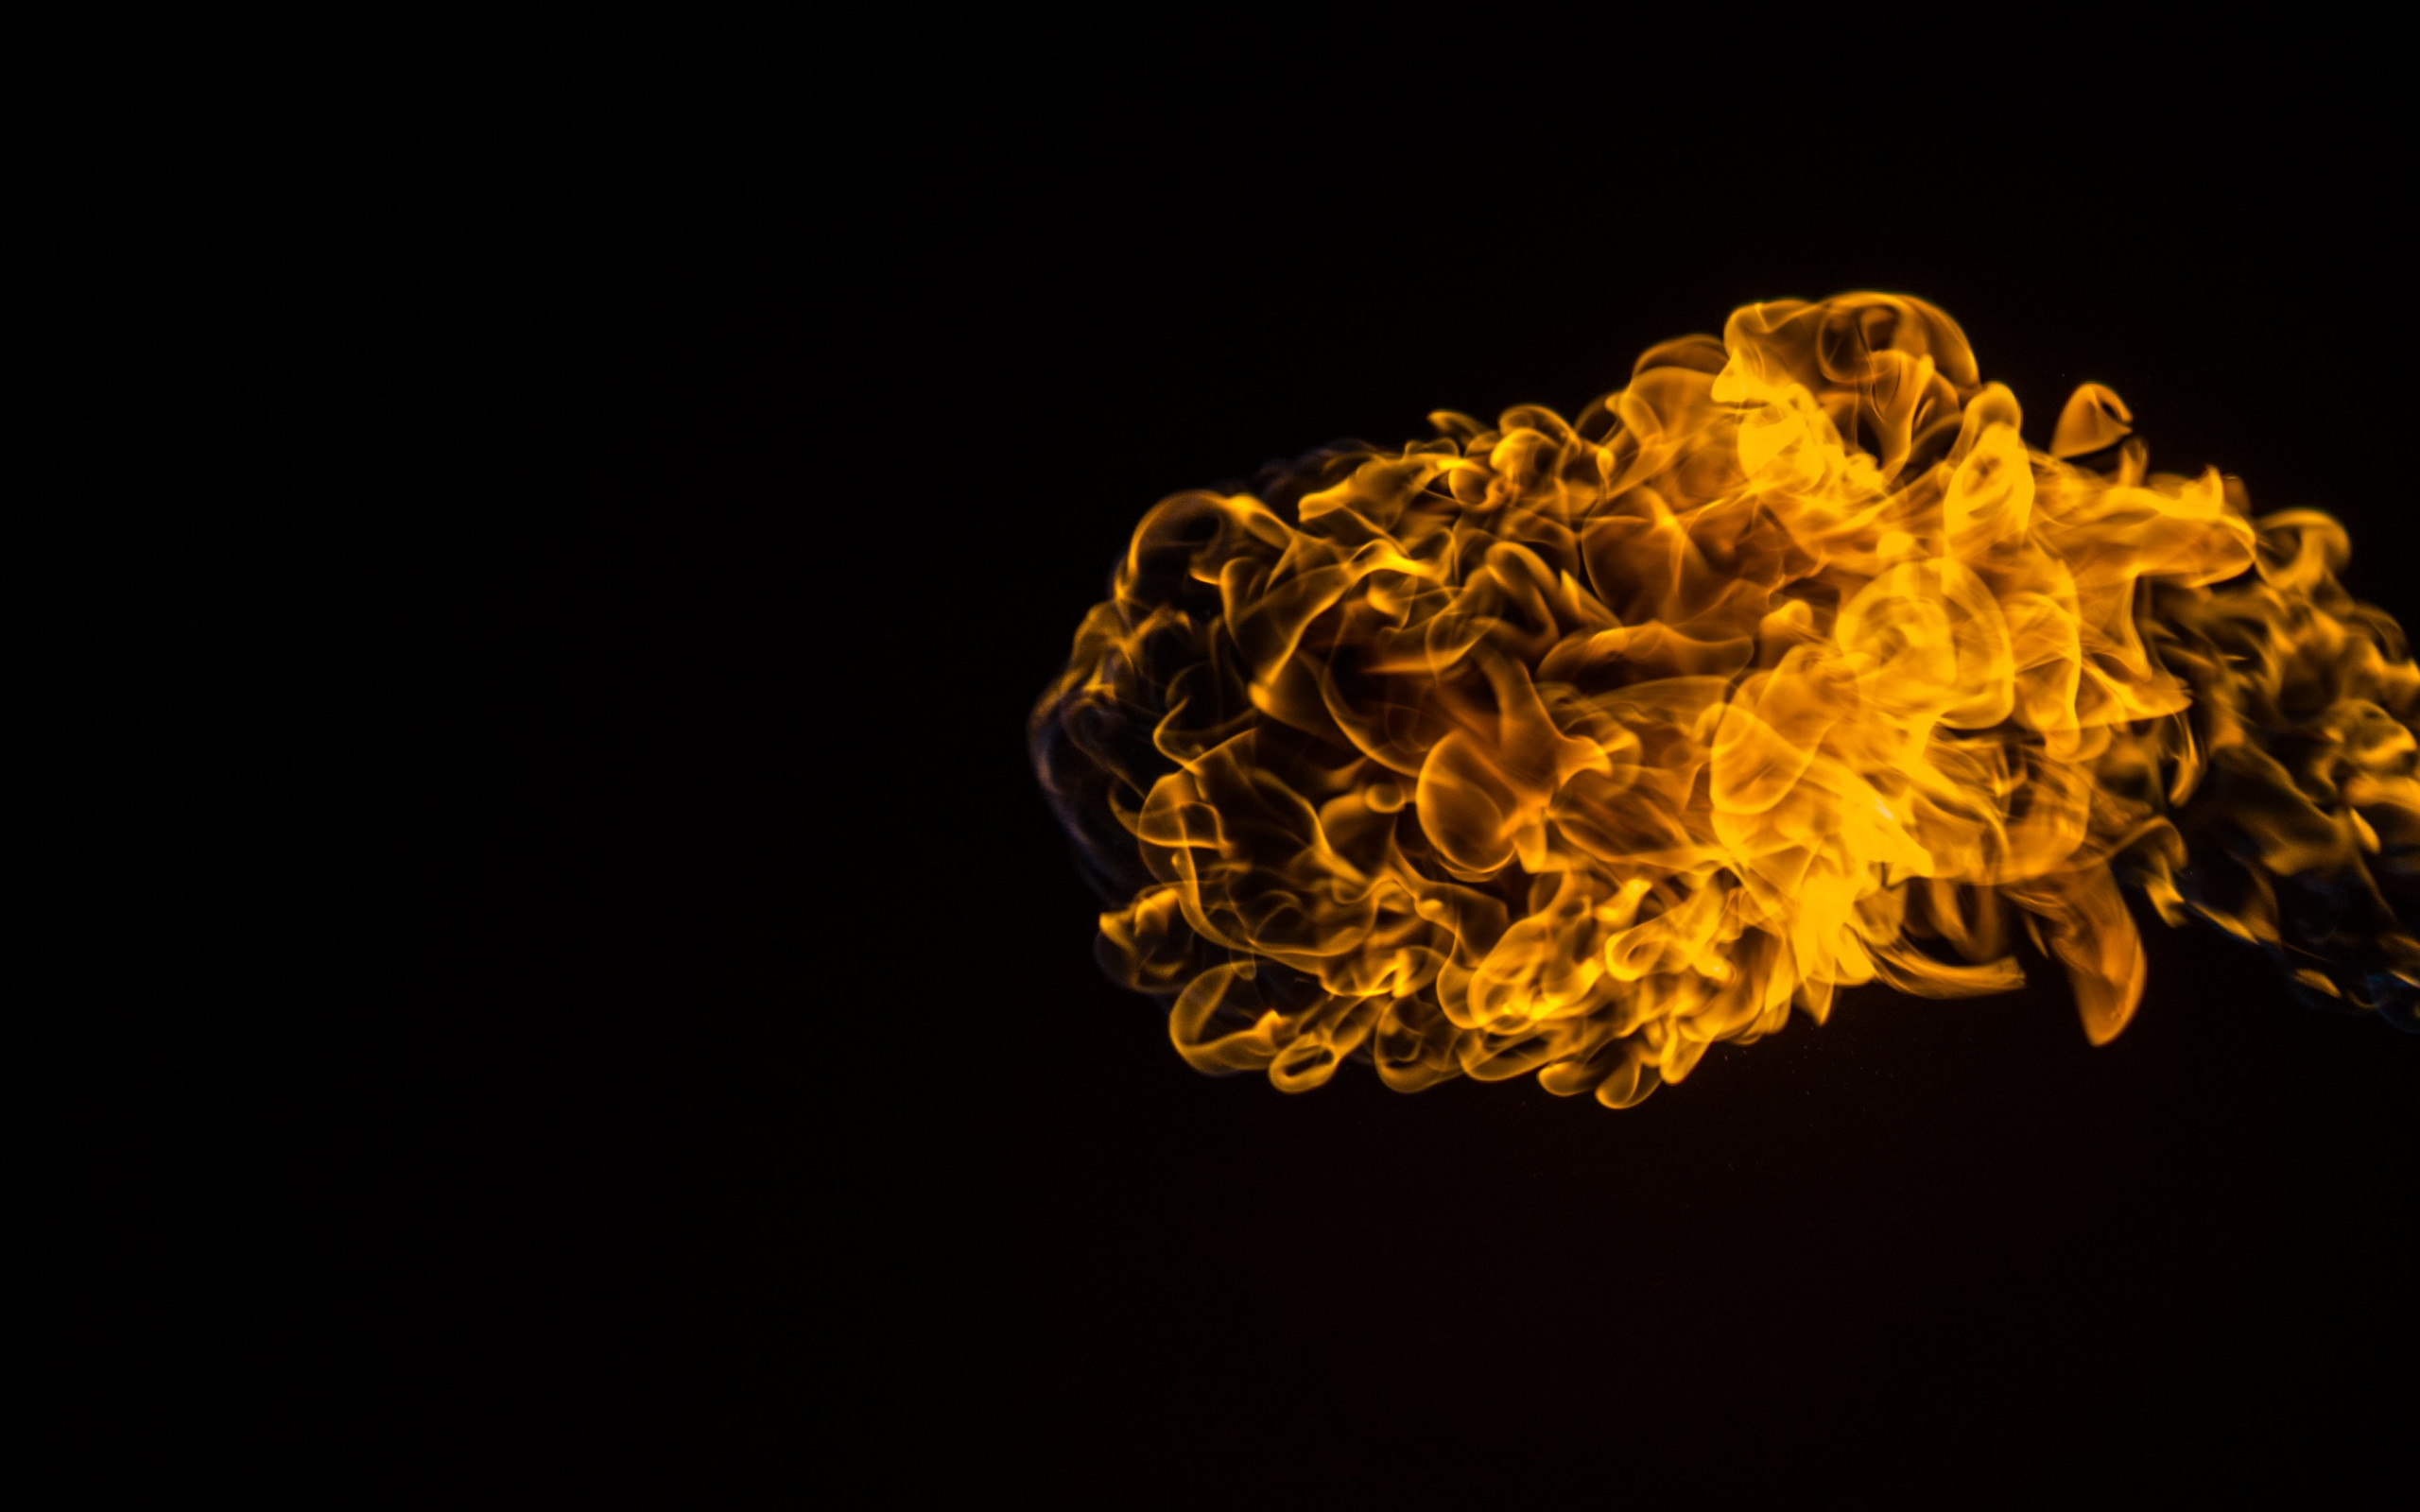 Flames effect wallpaper 2560x1600